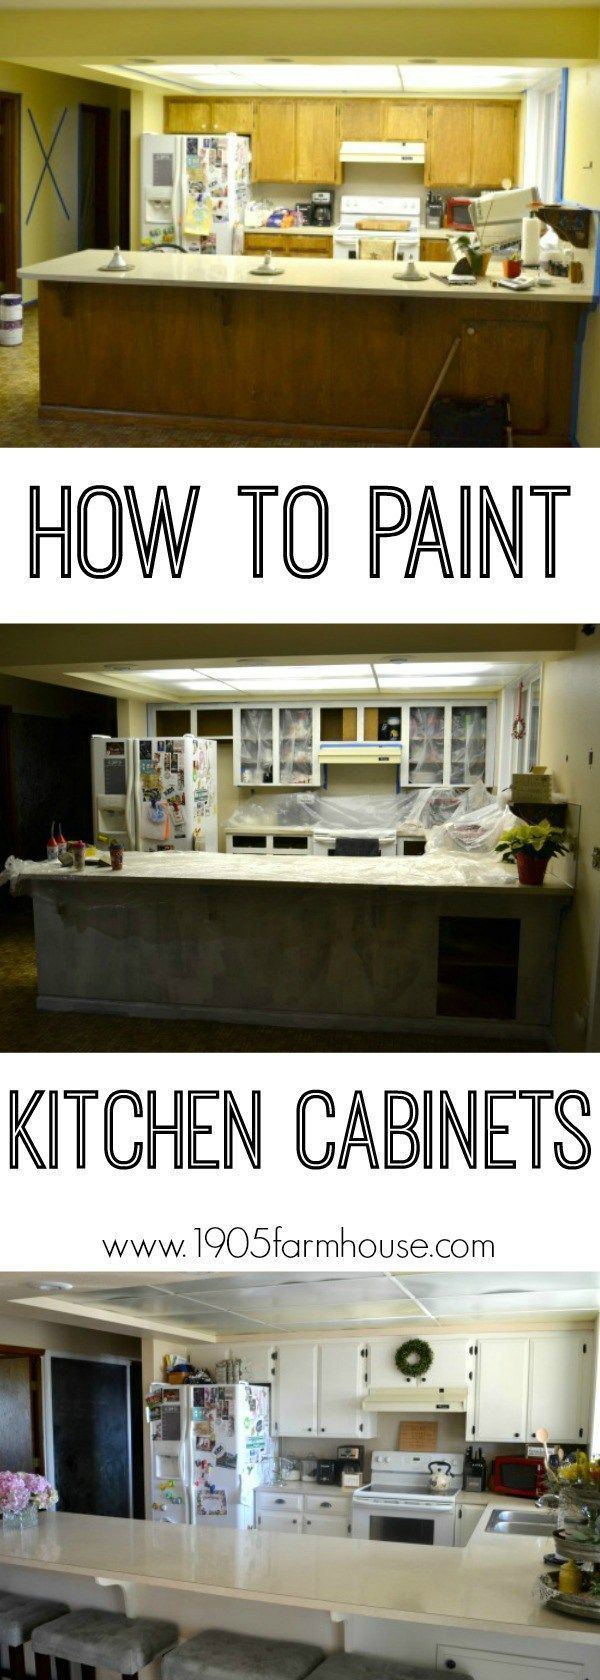 Kitchen Cabinets: An Update   Painting kitchen cabinets ...